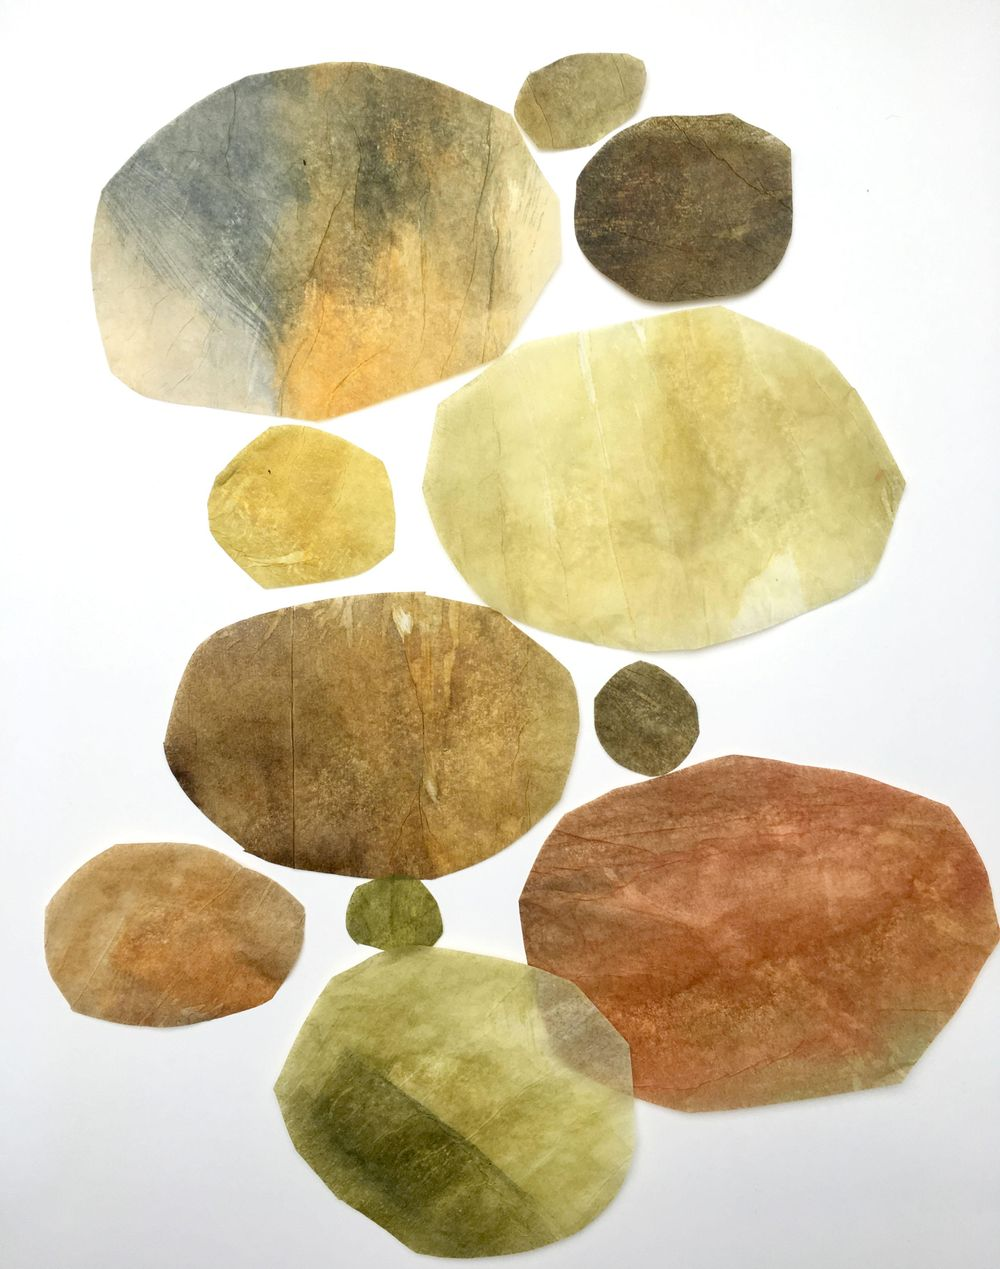 Painted stones - image 5 - student project